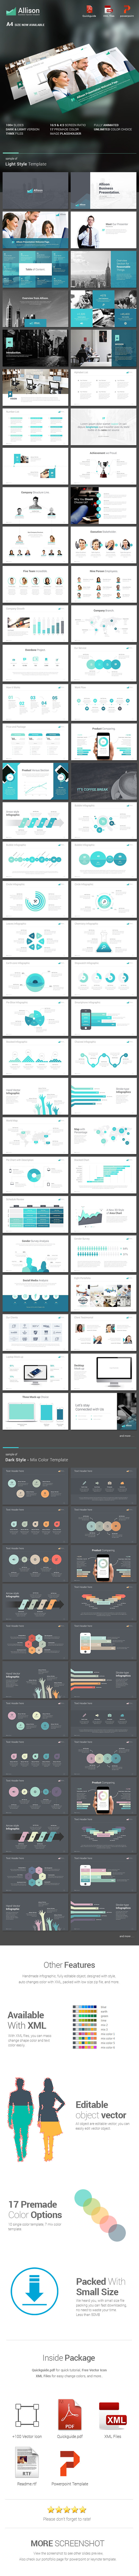 Allison Creative Powerpoint Template